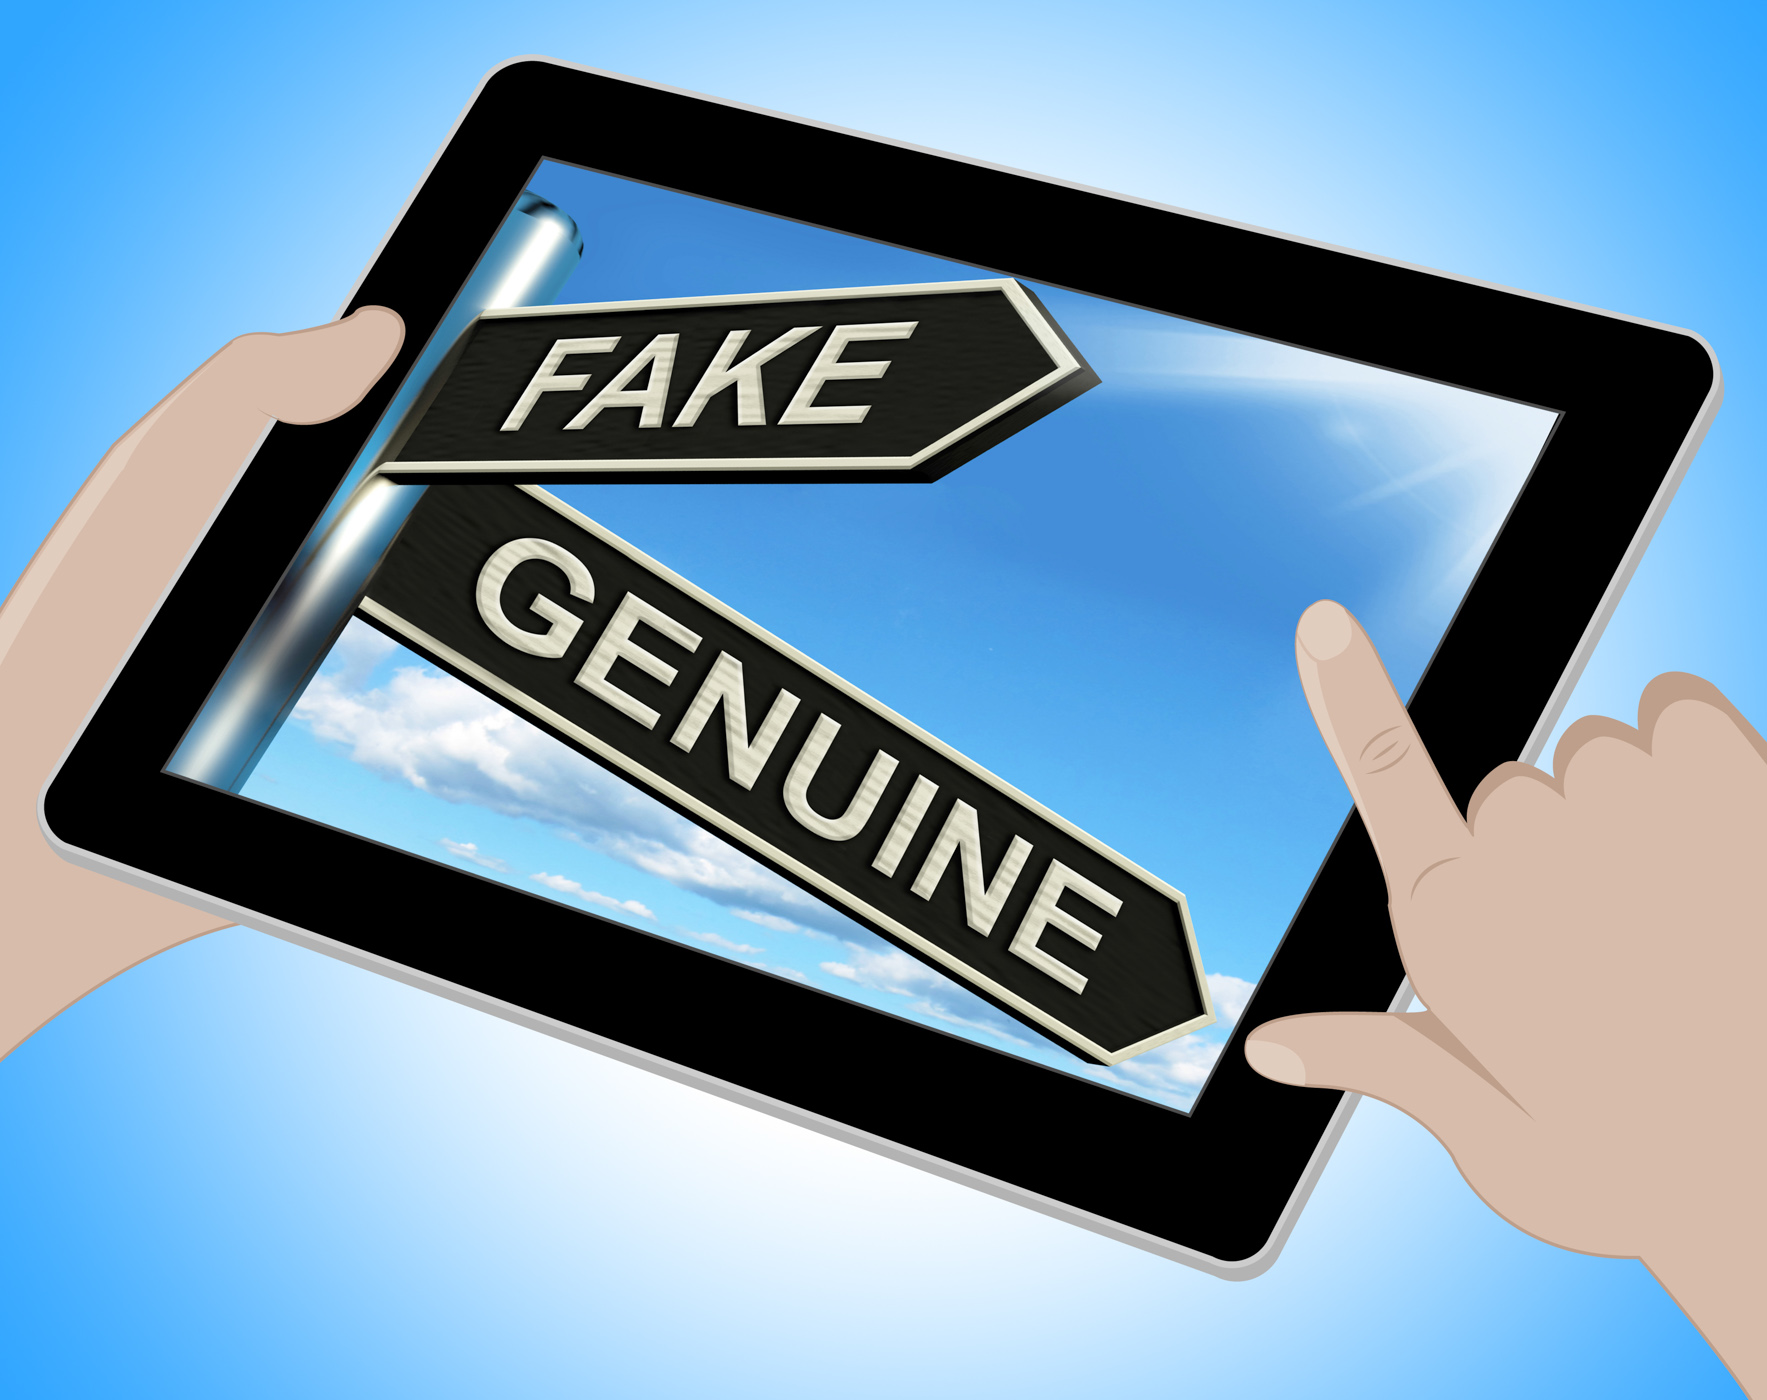 Fake Genuine Tablet Shows Imitation Or Authentic Product, Authentic, Original, Web, Tablet, HQ Photo